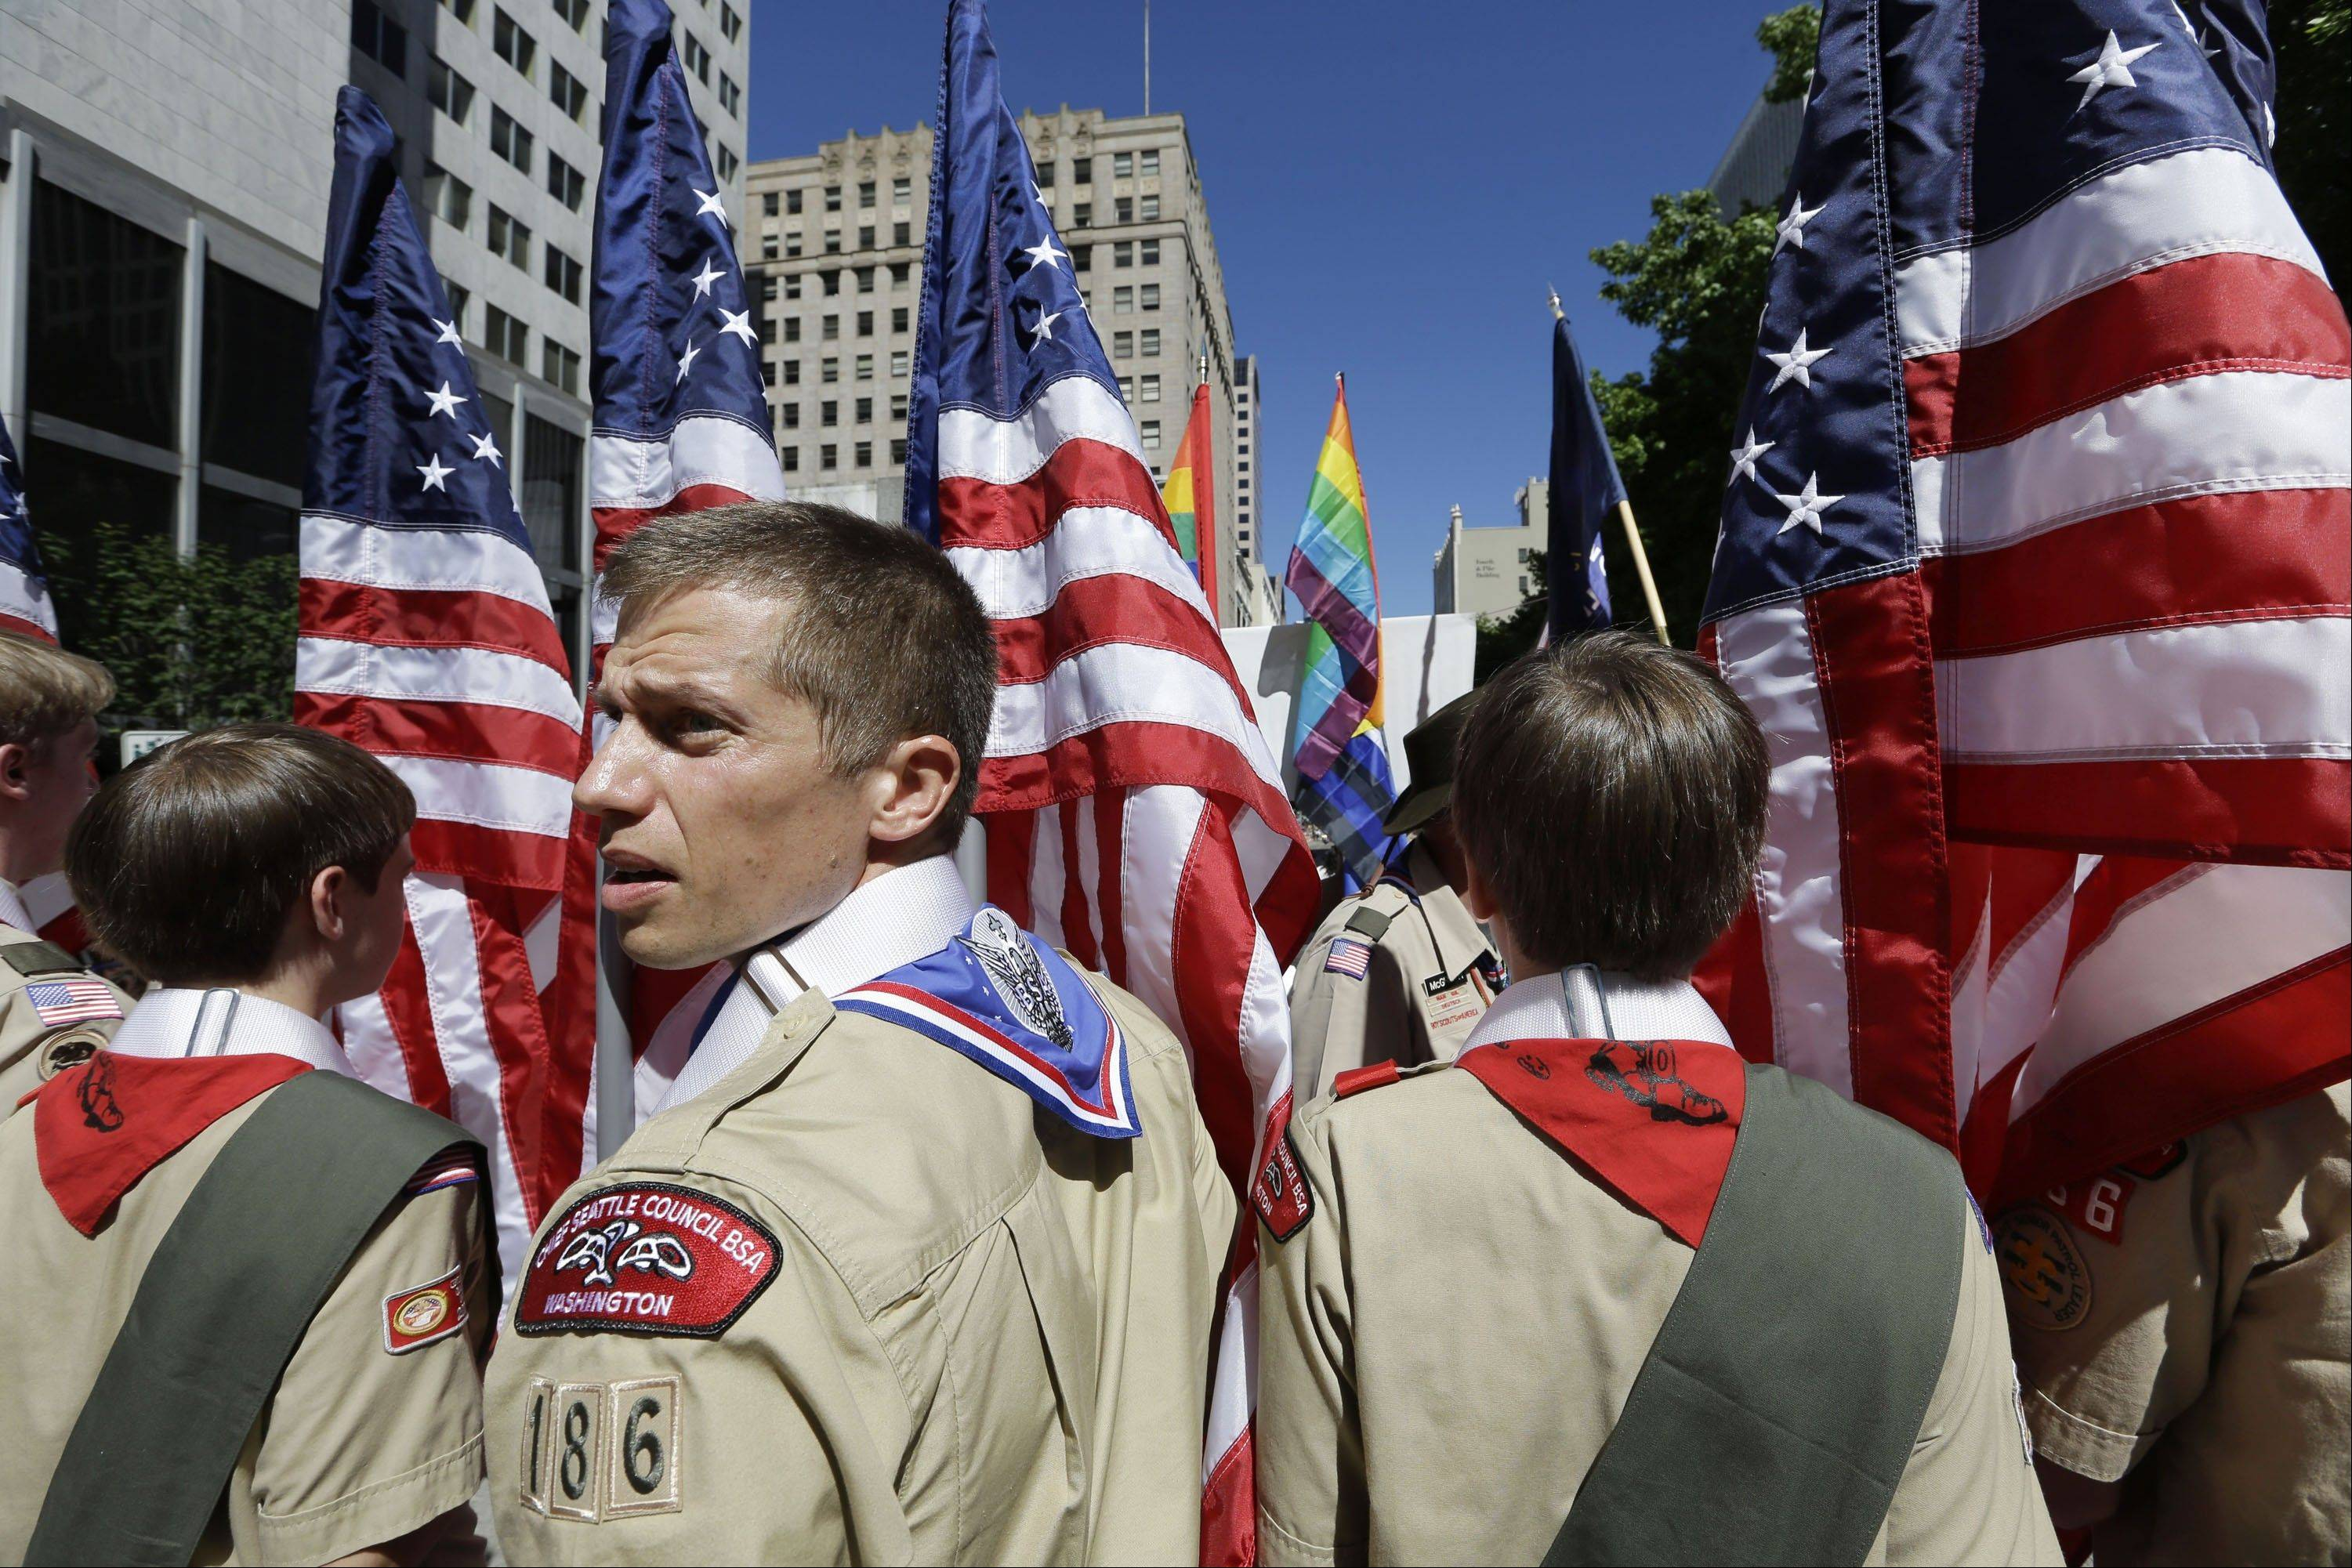 Boy Scouts from the Chief Seattle Council carry U.S. flags as they prepare to march in th